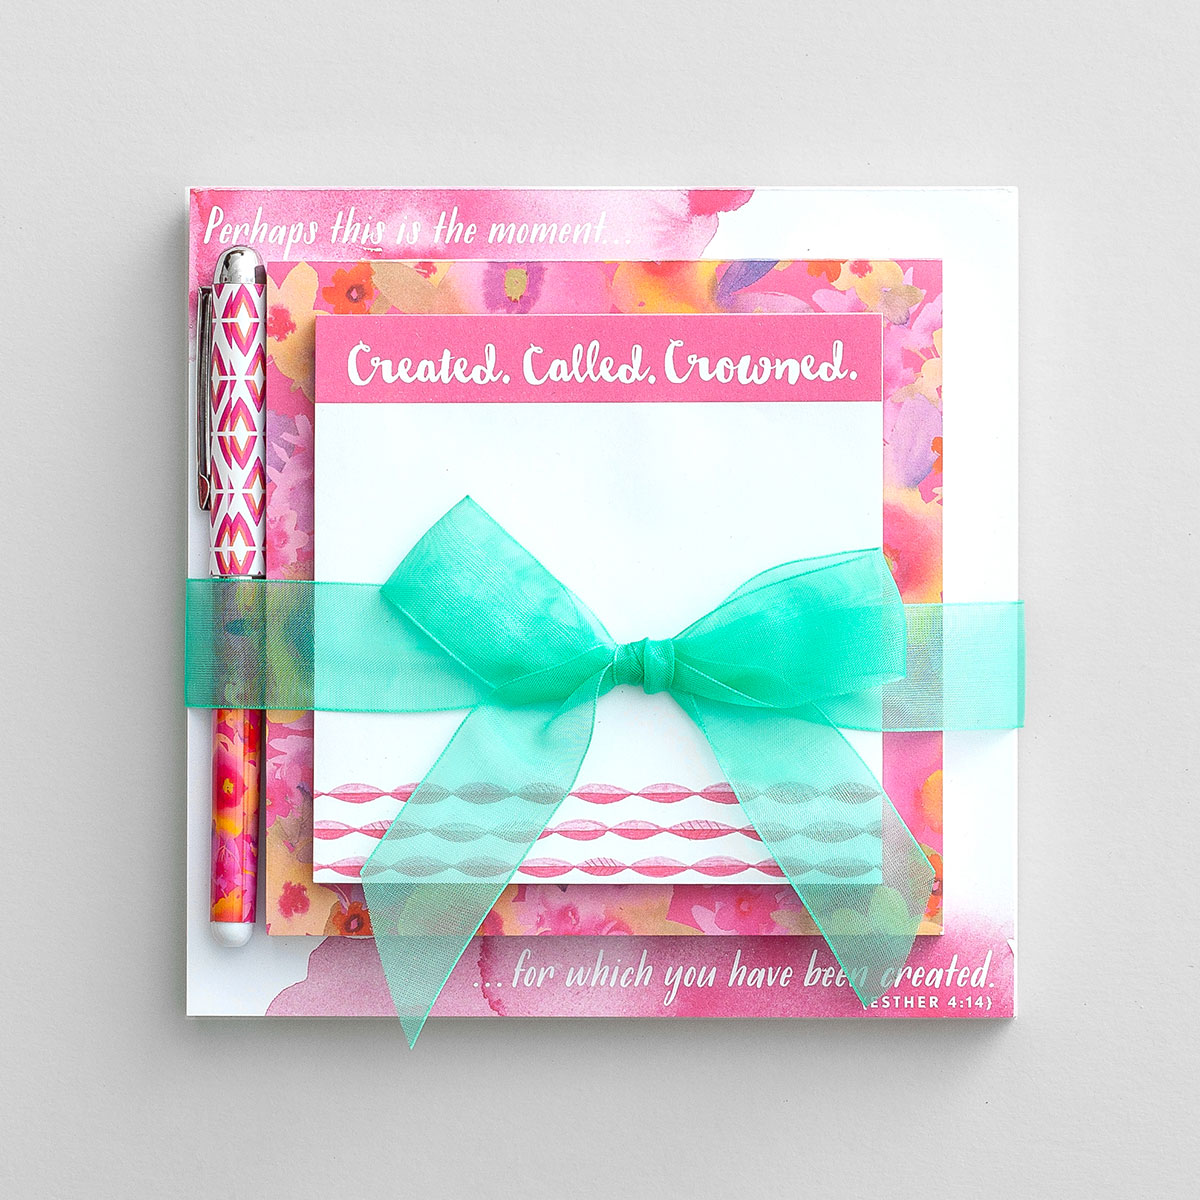 Created, Called, Crowned - 12 Memo and Pen Sets - Bulk Discount